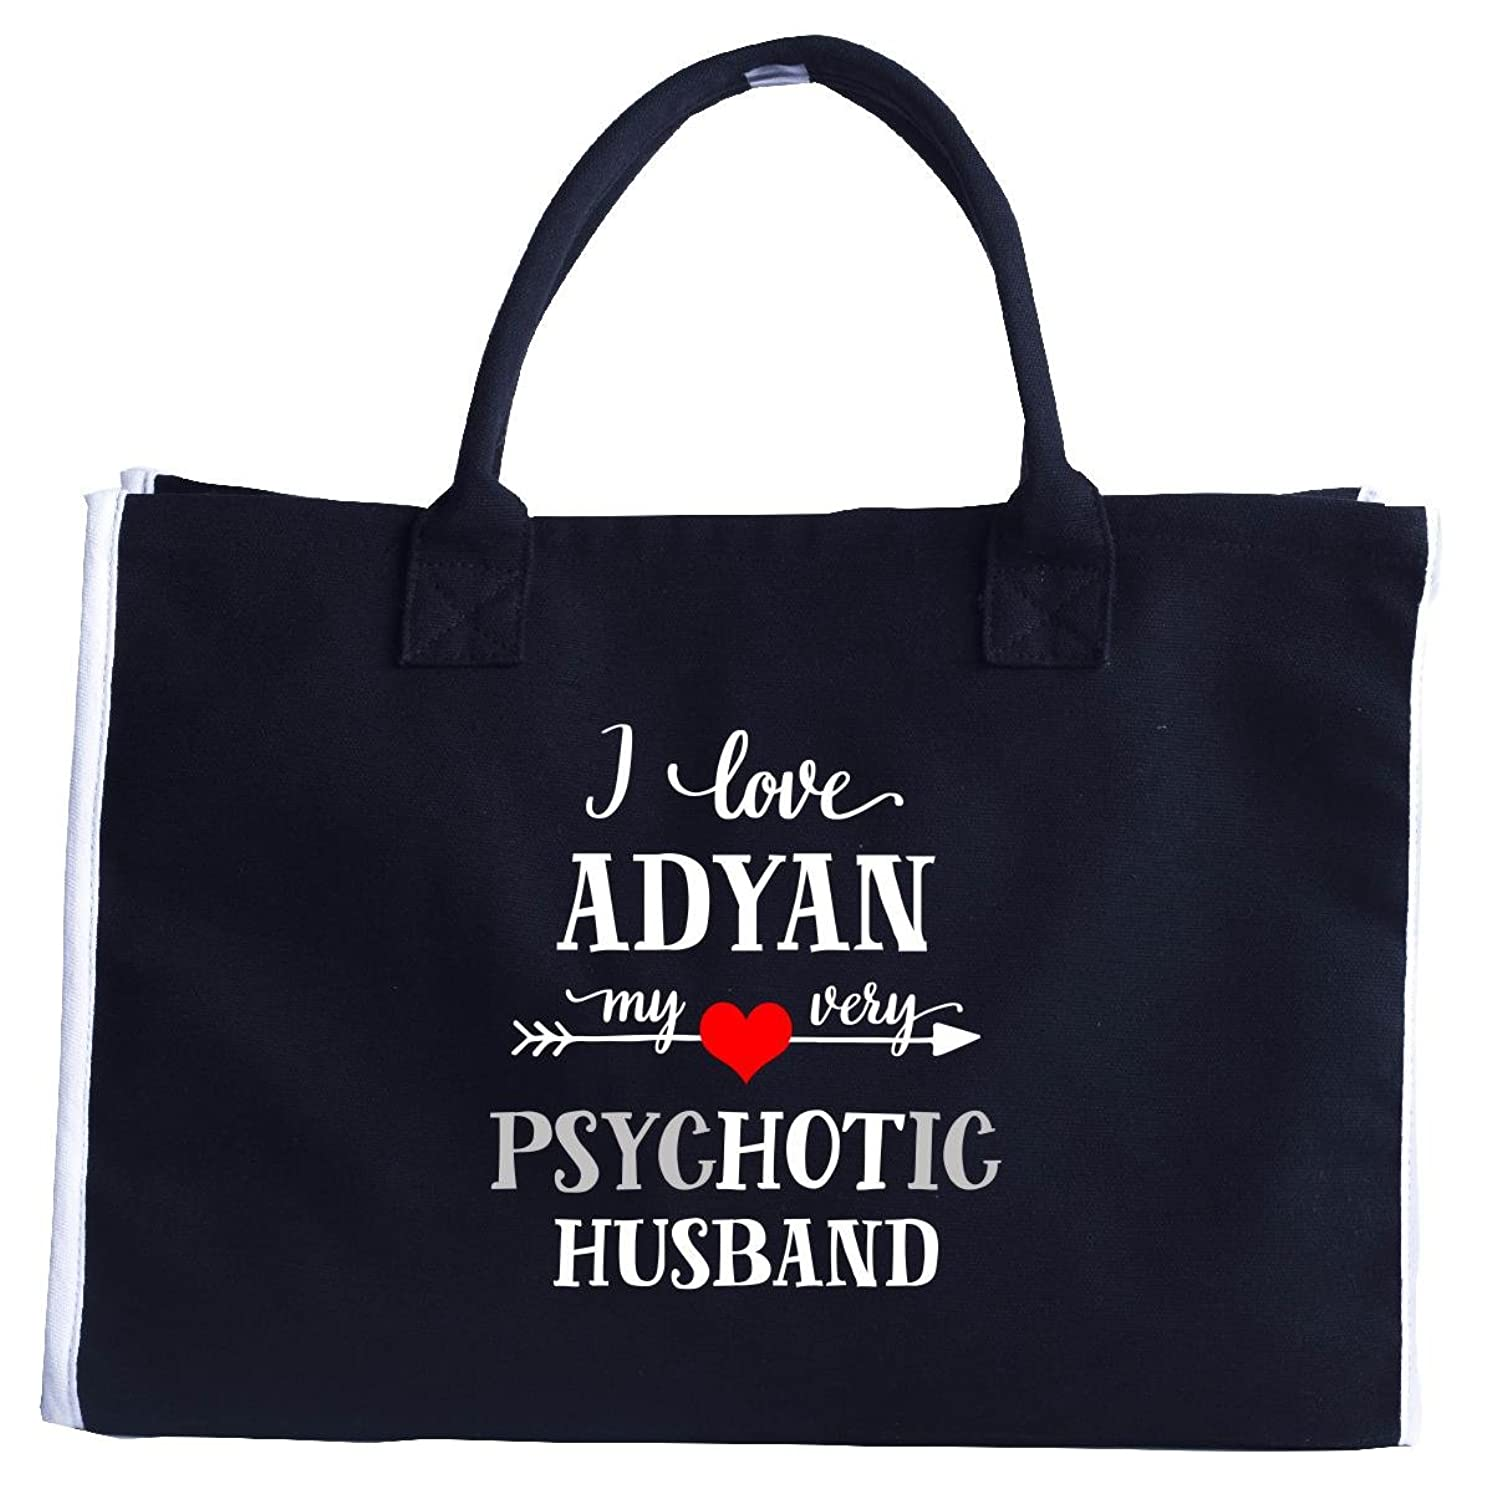 I Love Adyan My Very Psychotic Husband. Gift For Her - Fashion Tote Bag